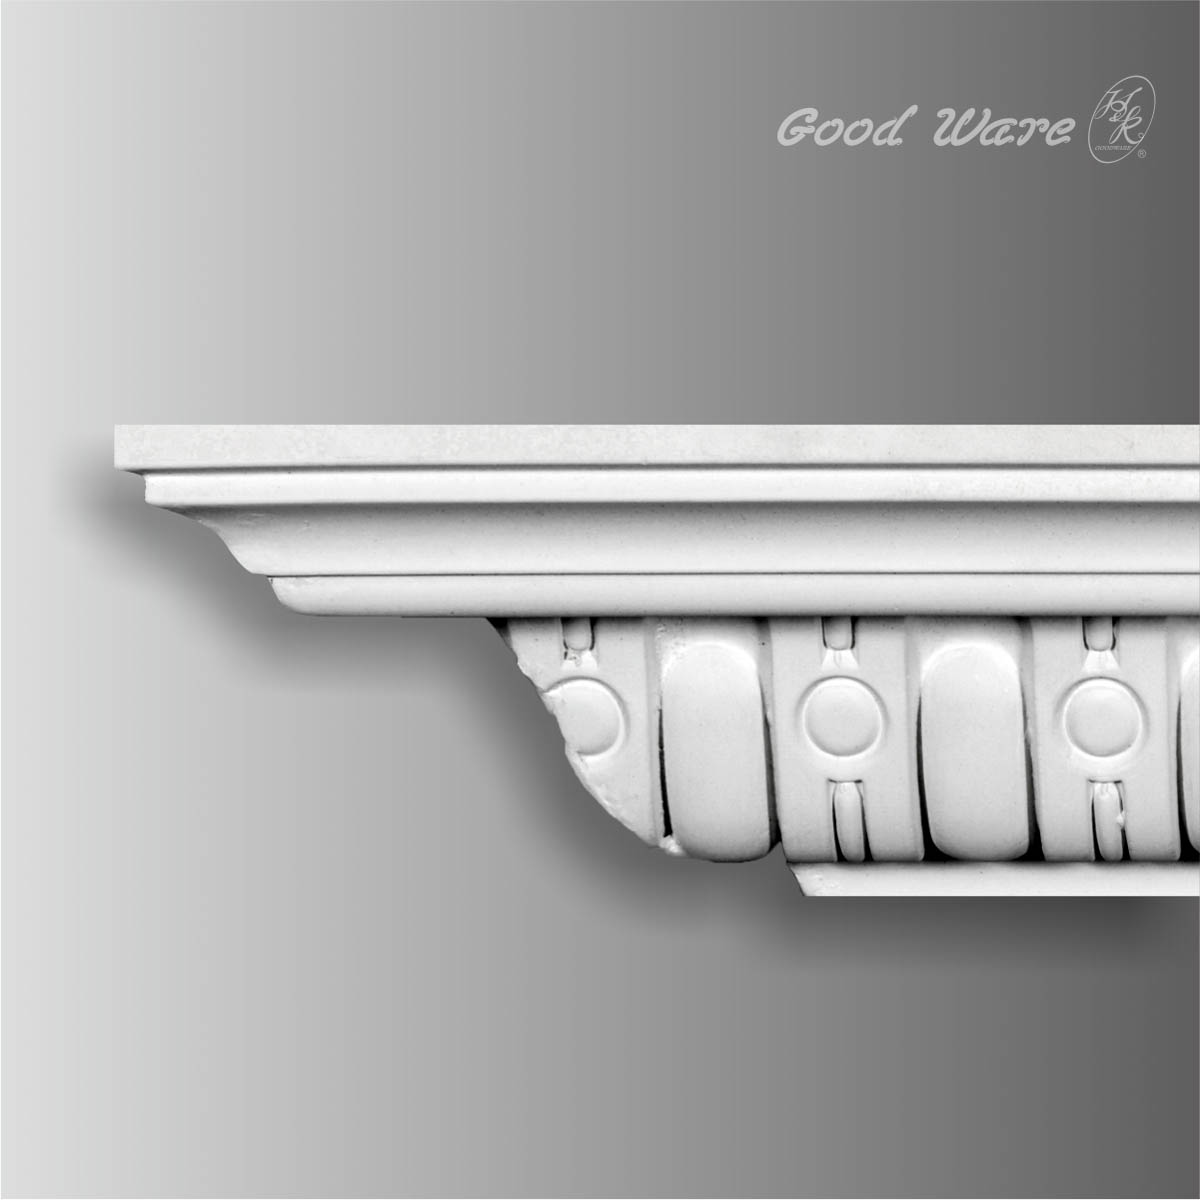 Polyurethane ornate crown molding